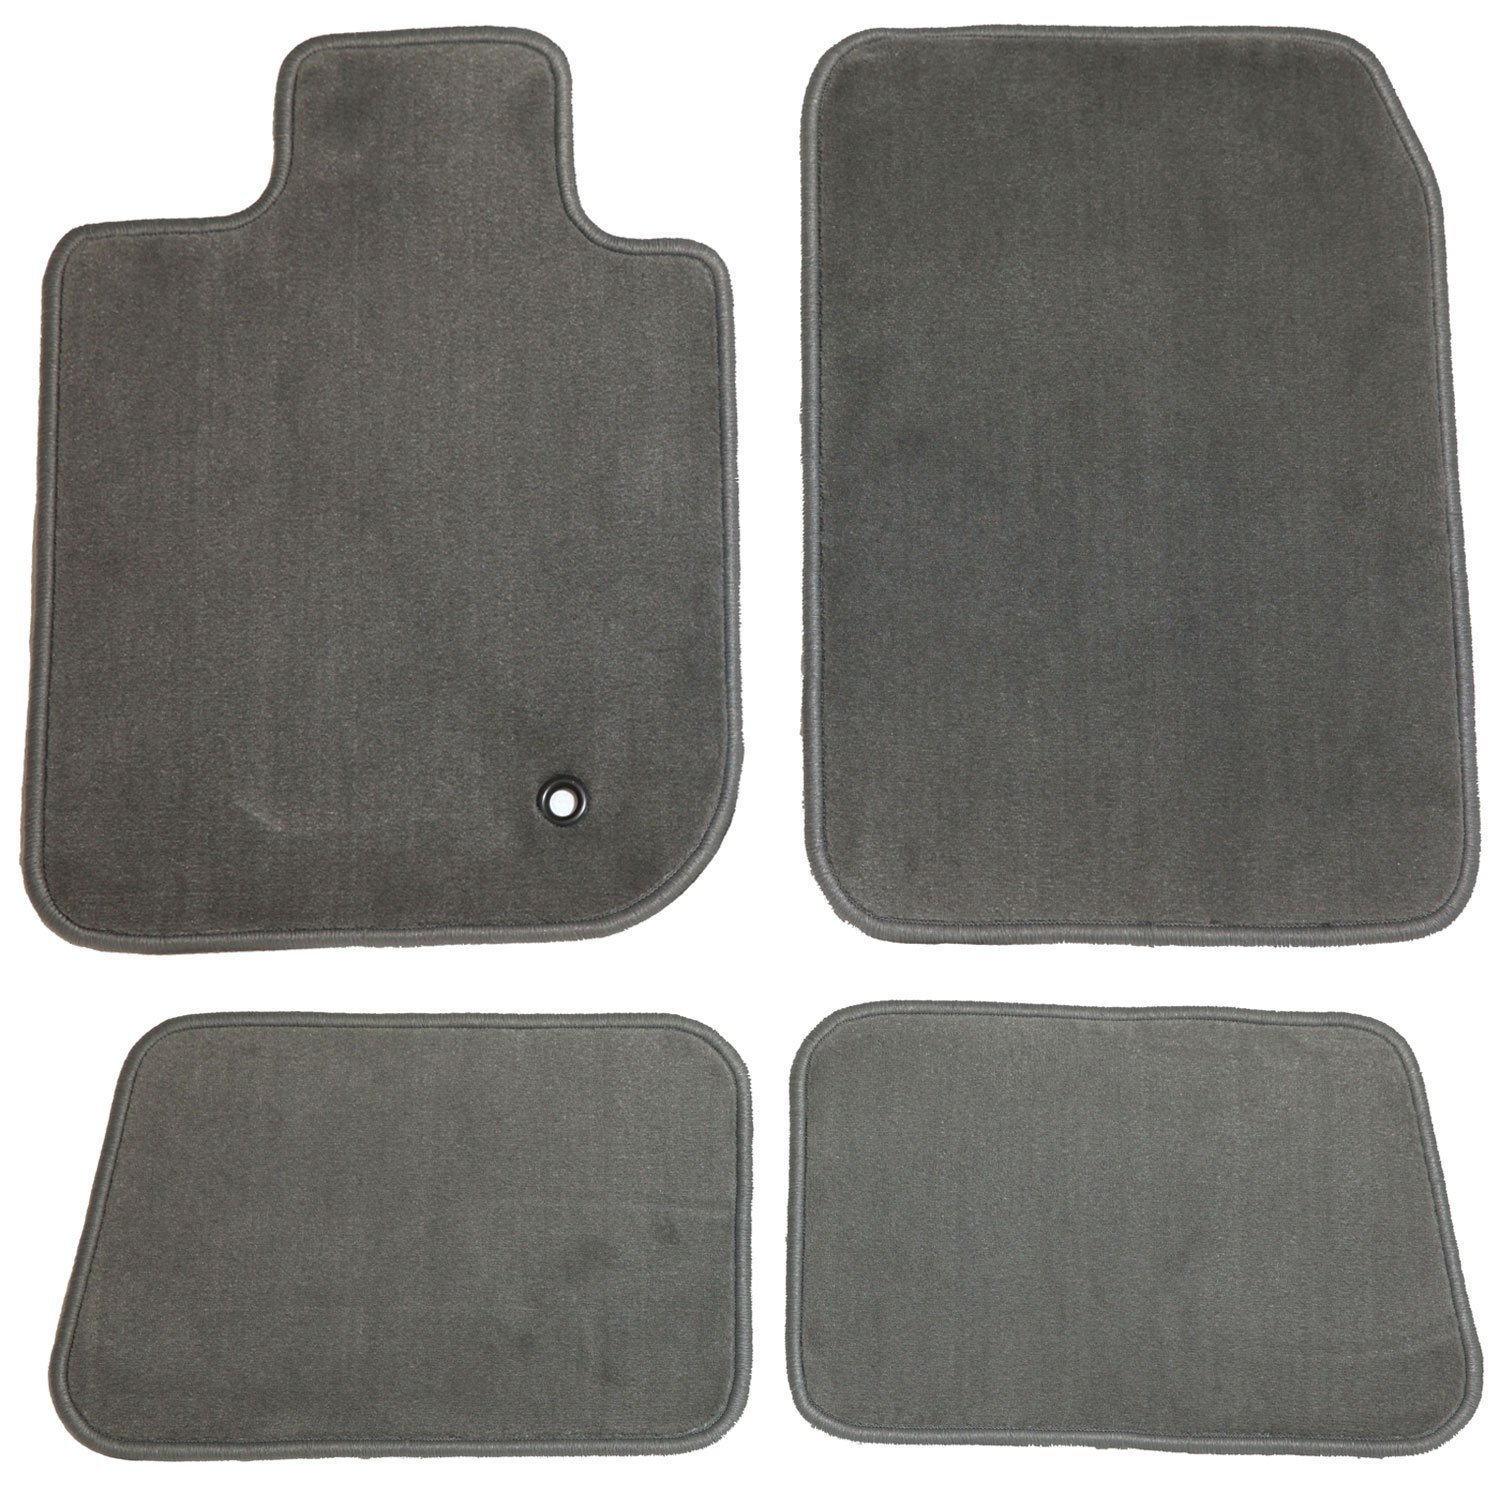 GGBAILEY D4769A-S2B-GY-LP Custom Fit Car Mats for 2002 2003 Passenger /& Rear Floor 2004 Isuzu Axiom Grey Loop Driver